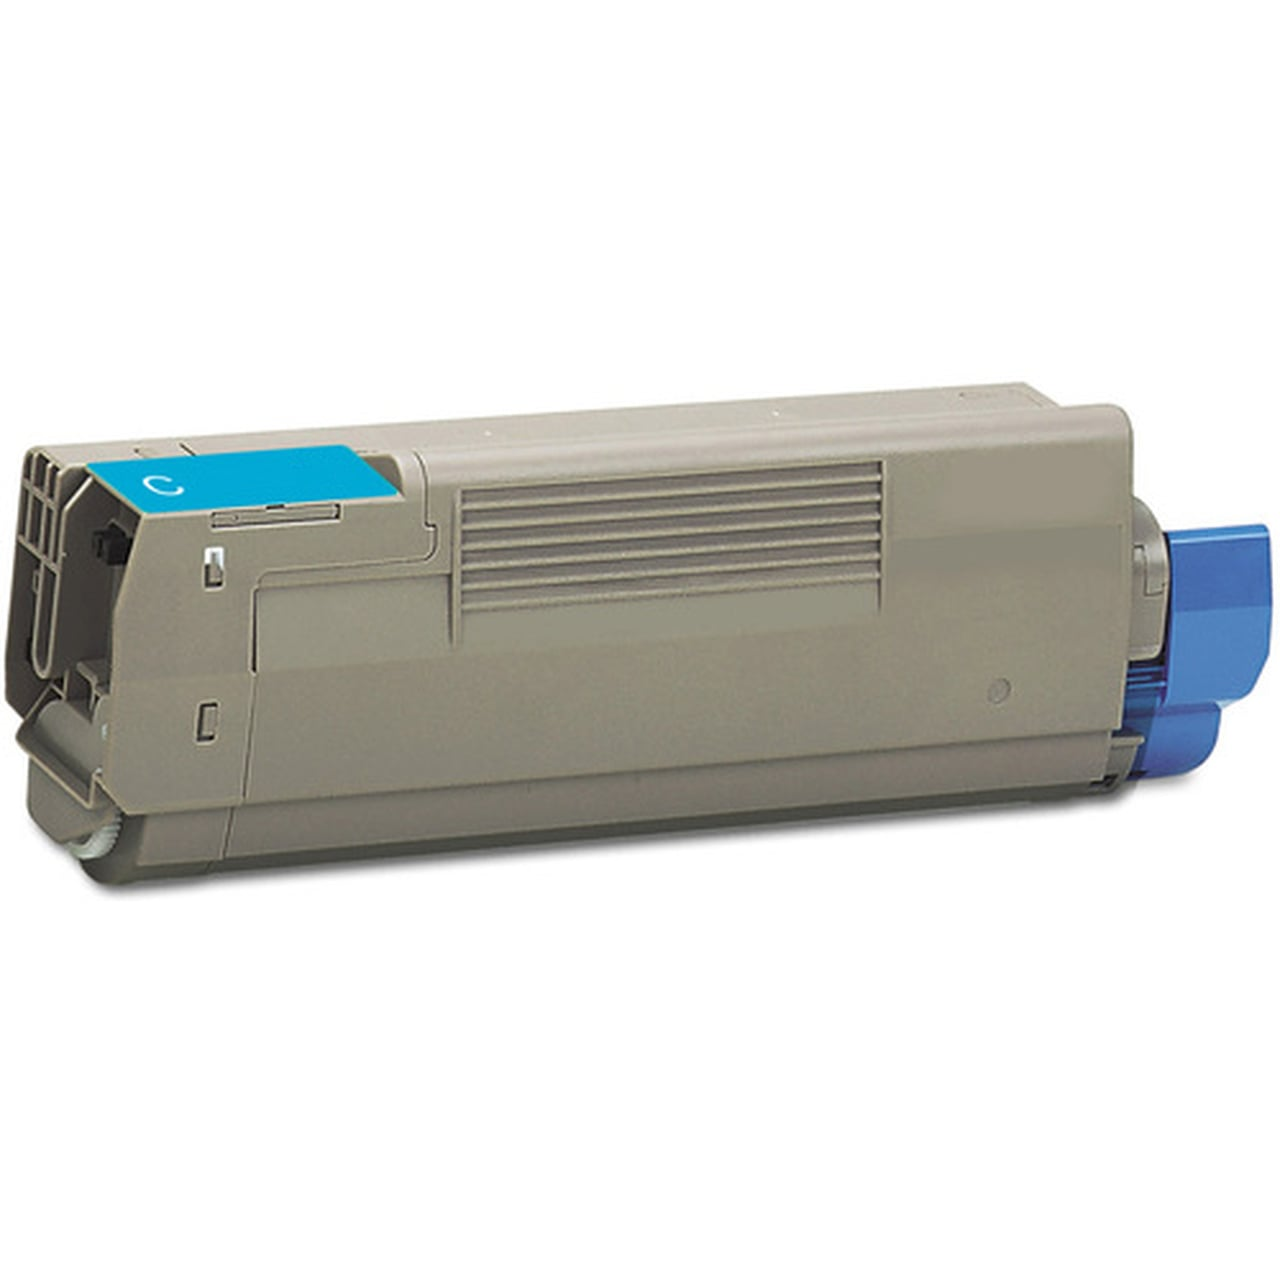 43324419 Toner Cartridge - Okidata Compatible (Cyan)